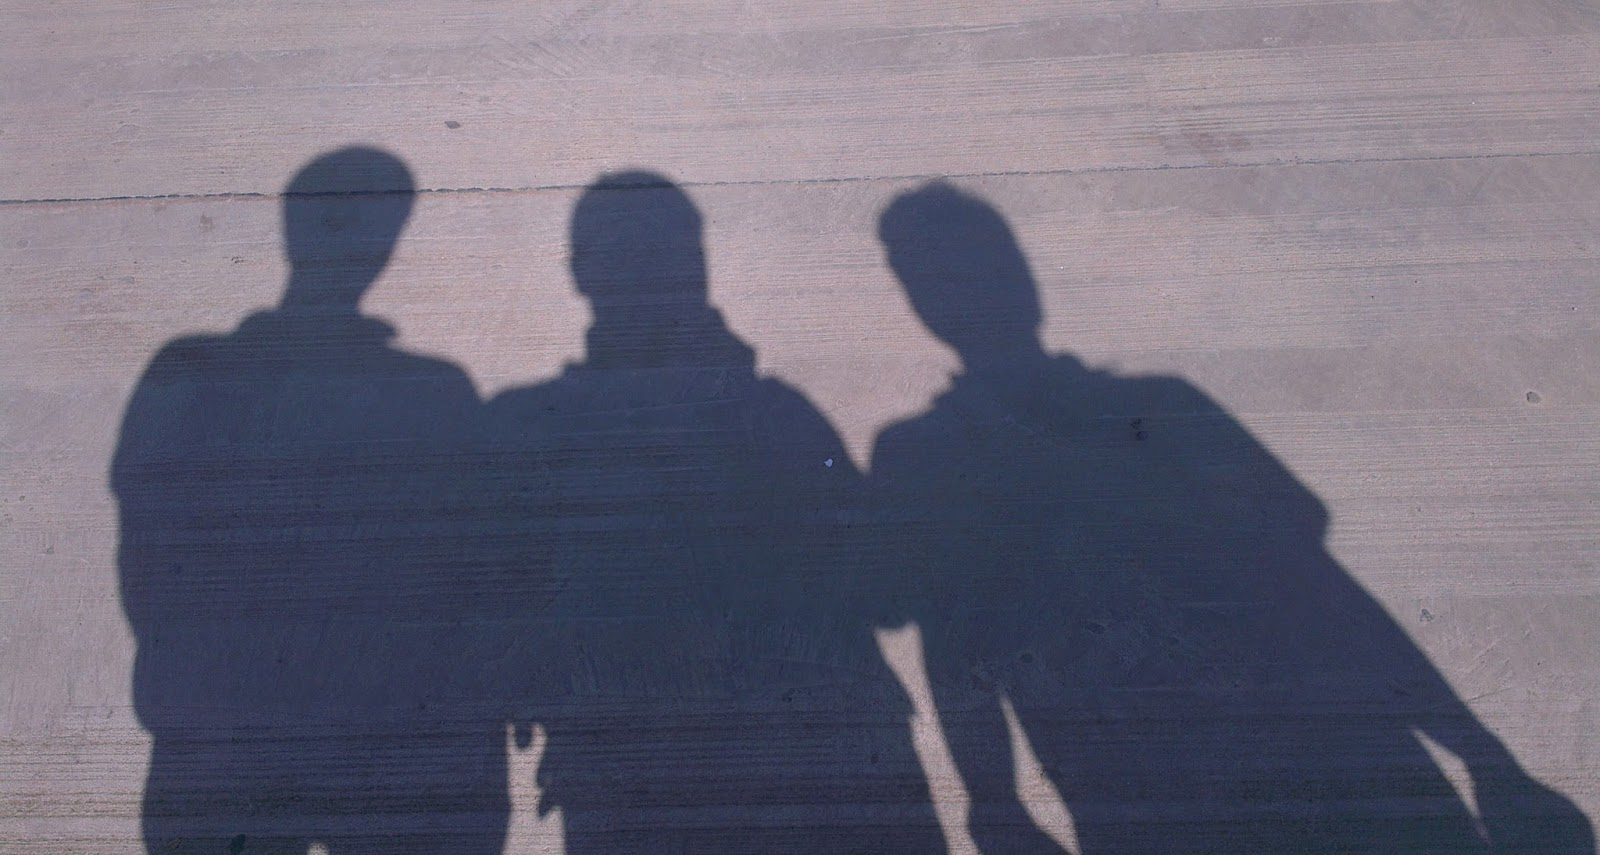 The Shadow of Three